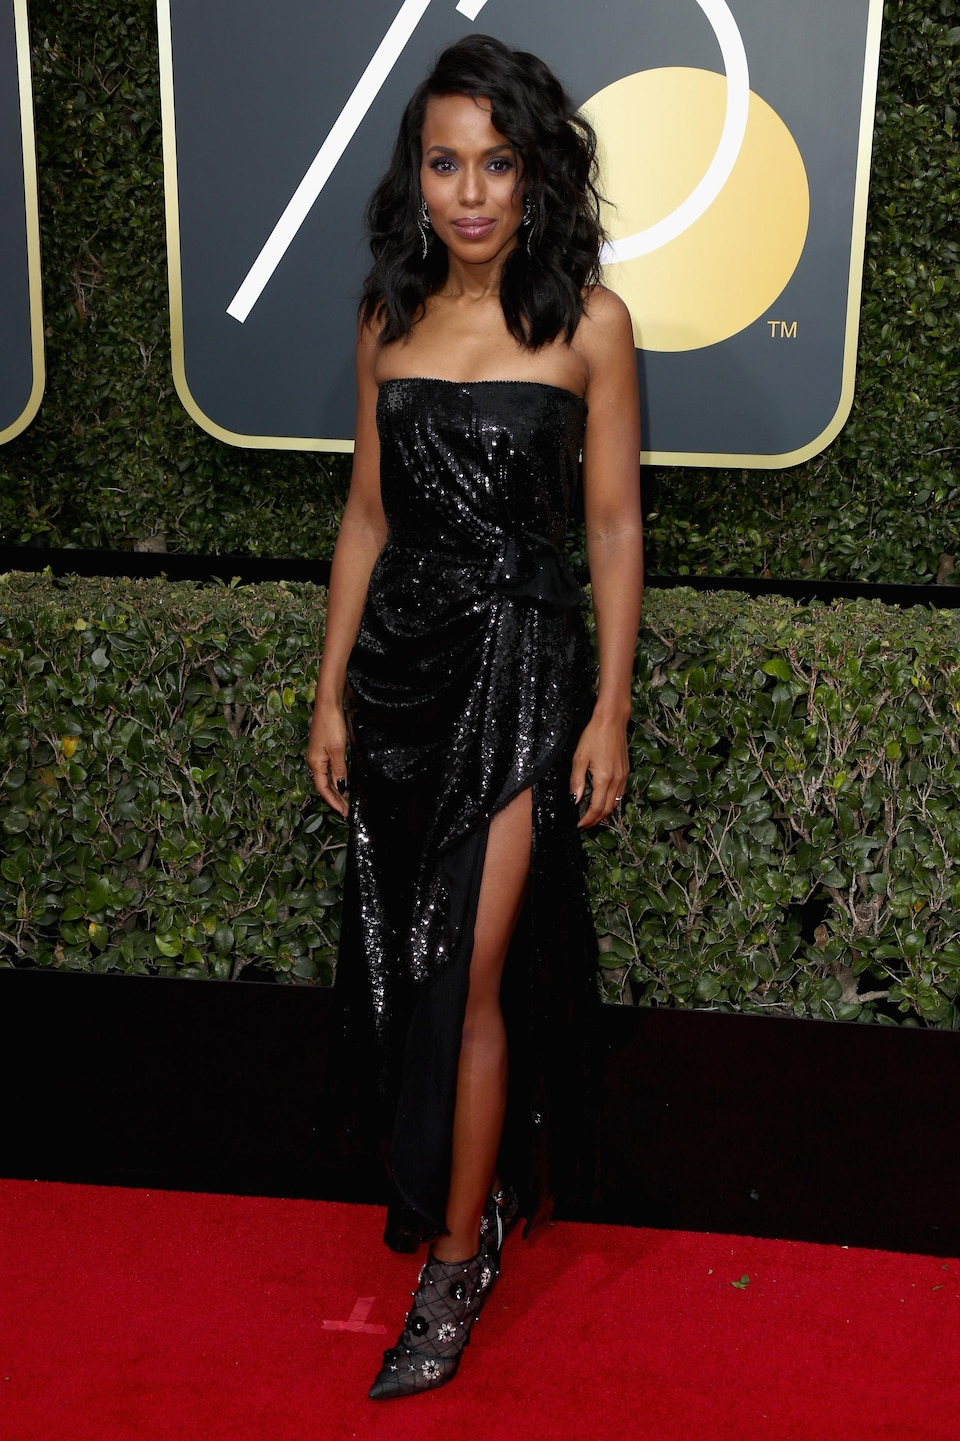 L'actrice Kerry Washington sur le tapis rouge des Golden Globes